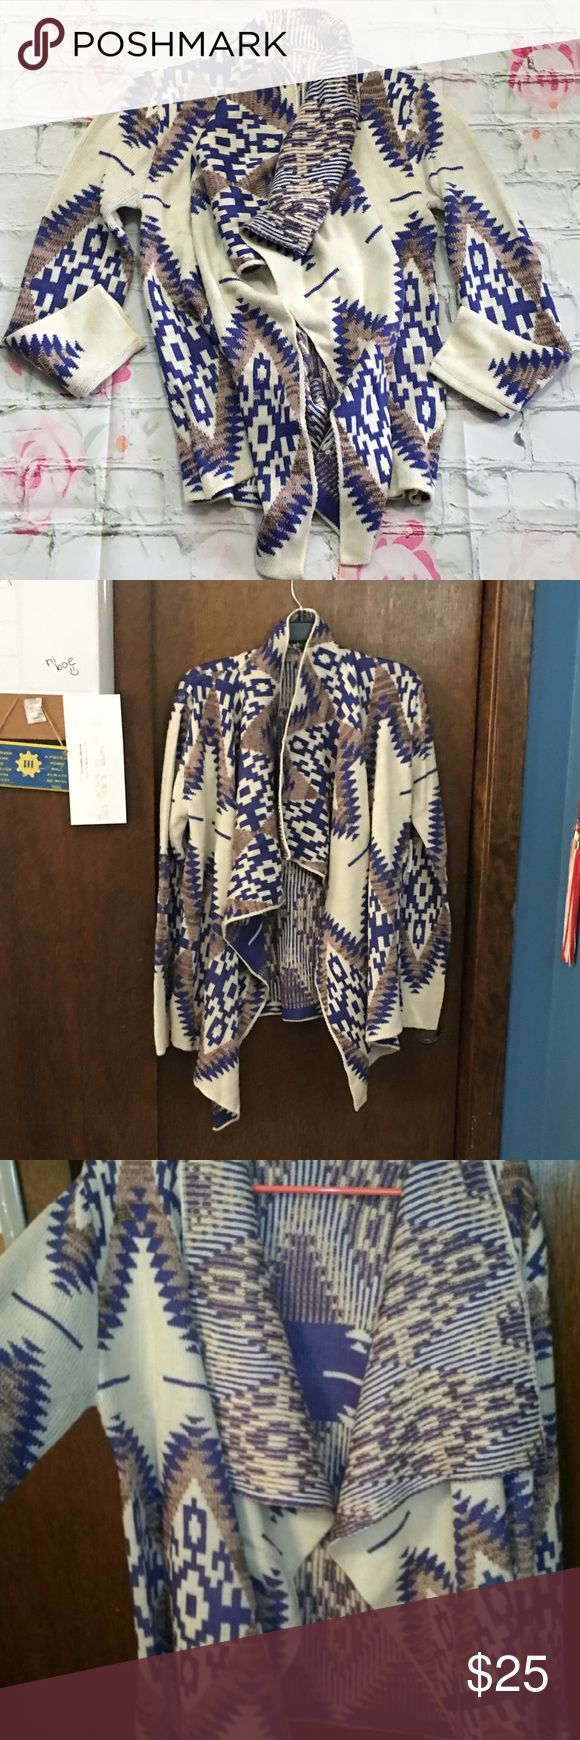 """Tribal Print Cardigan New with tags. Charlotte Russe Tribal Print Cardigan with cream, blue, and brown colors. It is 22"""" from armpit to armpit laying flat and about 25"""" long.  Pet Friendly Home, Smoke Free Home , No trades. Offers, Bundles, and Questions Encouraged Charlotte Russe Sweaters Cardigans"""